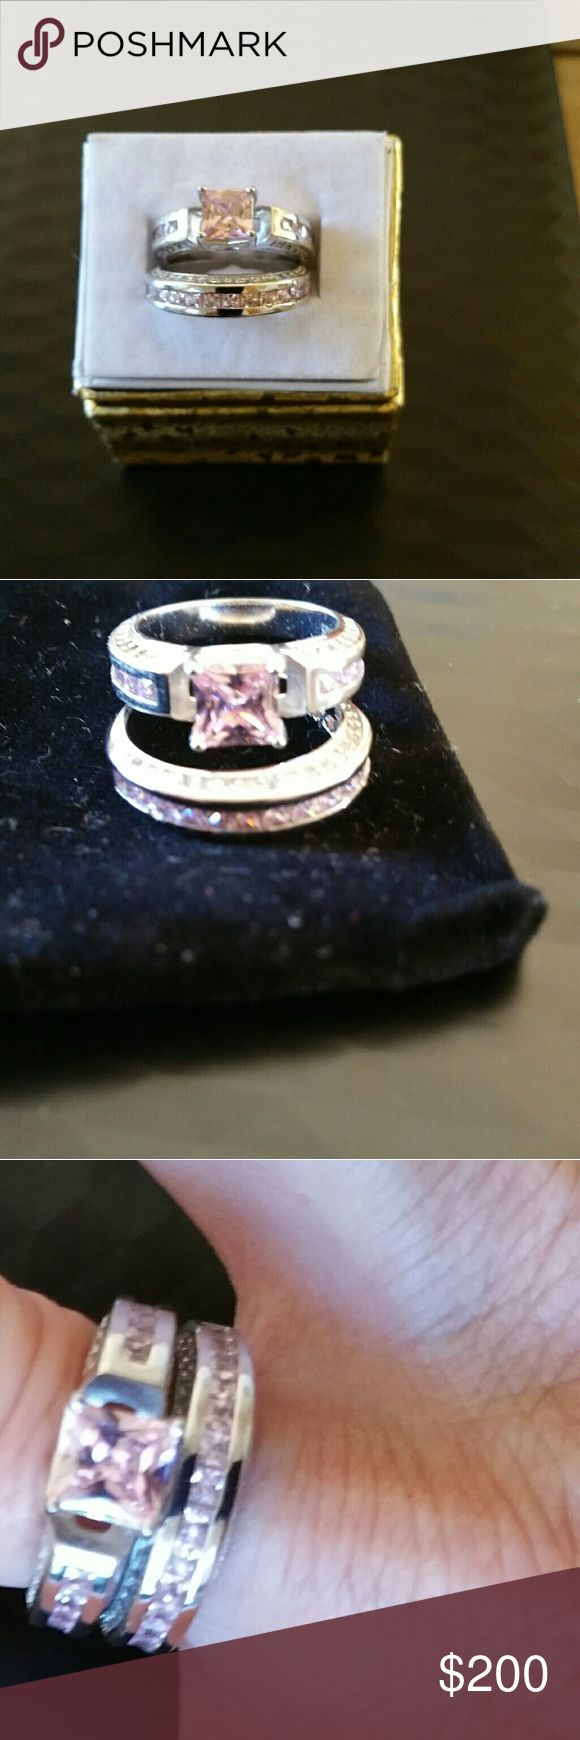 Engagement Ring Set Sterling Silver genuine through, 2 carat pink sapphire engagement ring , wedding band same with approximate 16 small pink sapphires on band.  I have to let go relationship a heartbreaker but set is beautiful girls. Please consider would bring me joy to help in your wedded bliss.. Jewelry Rings